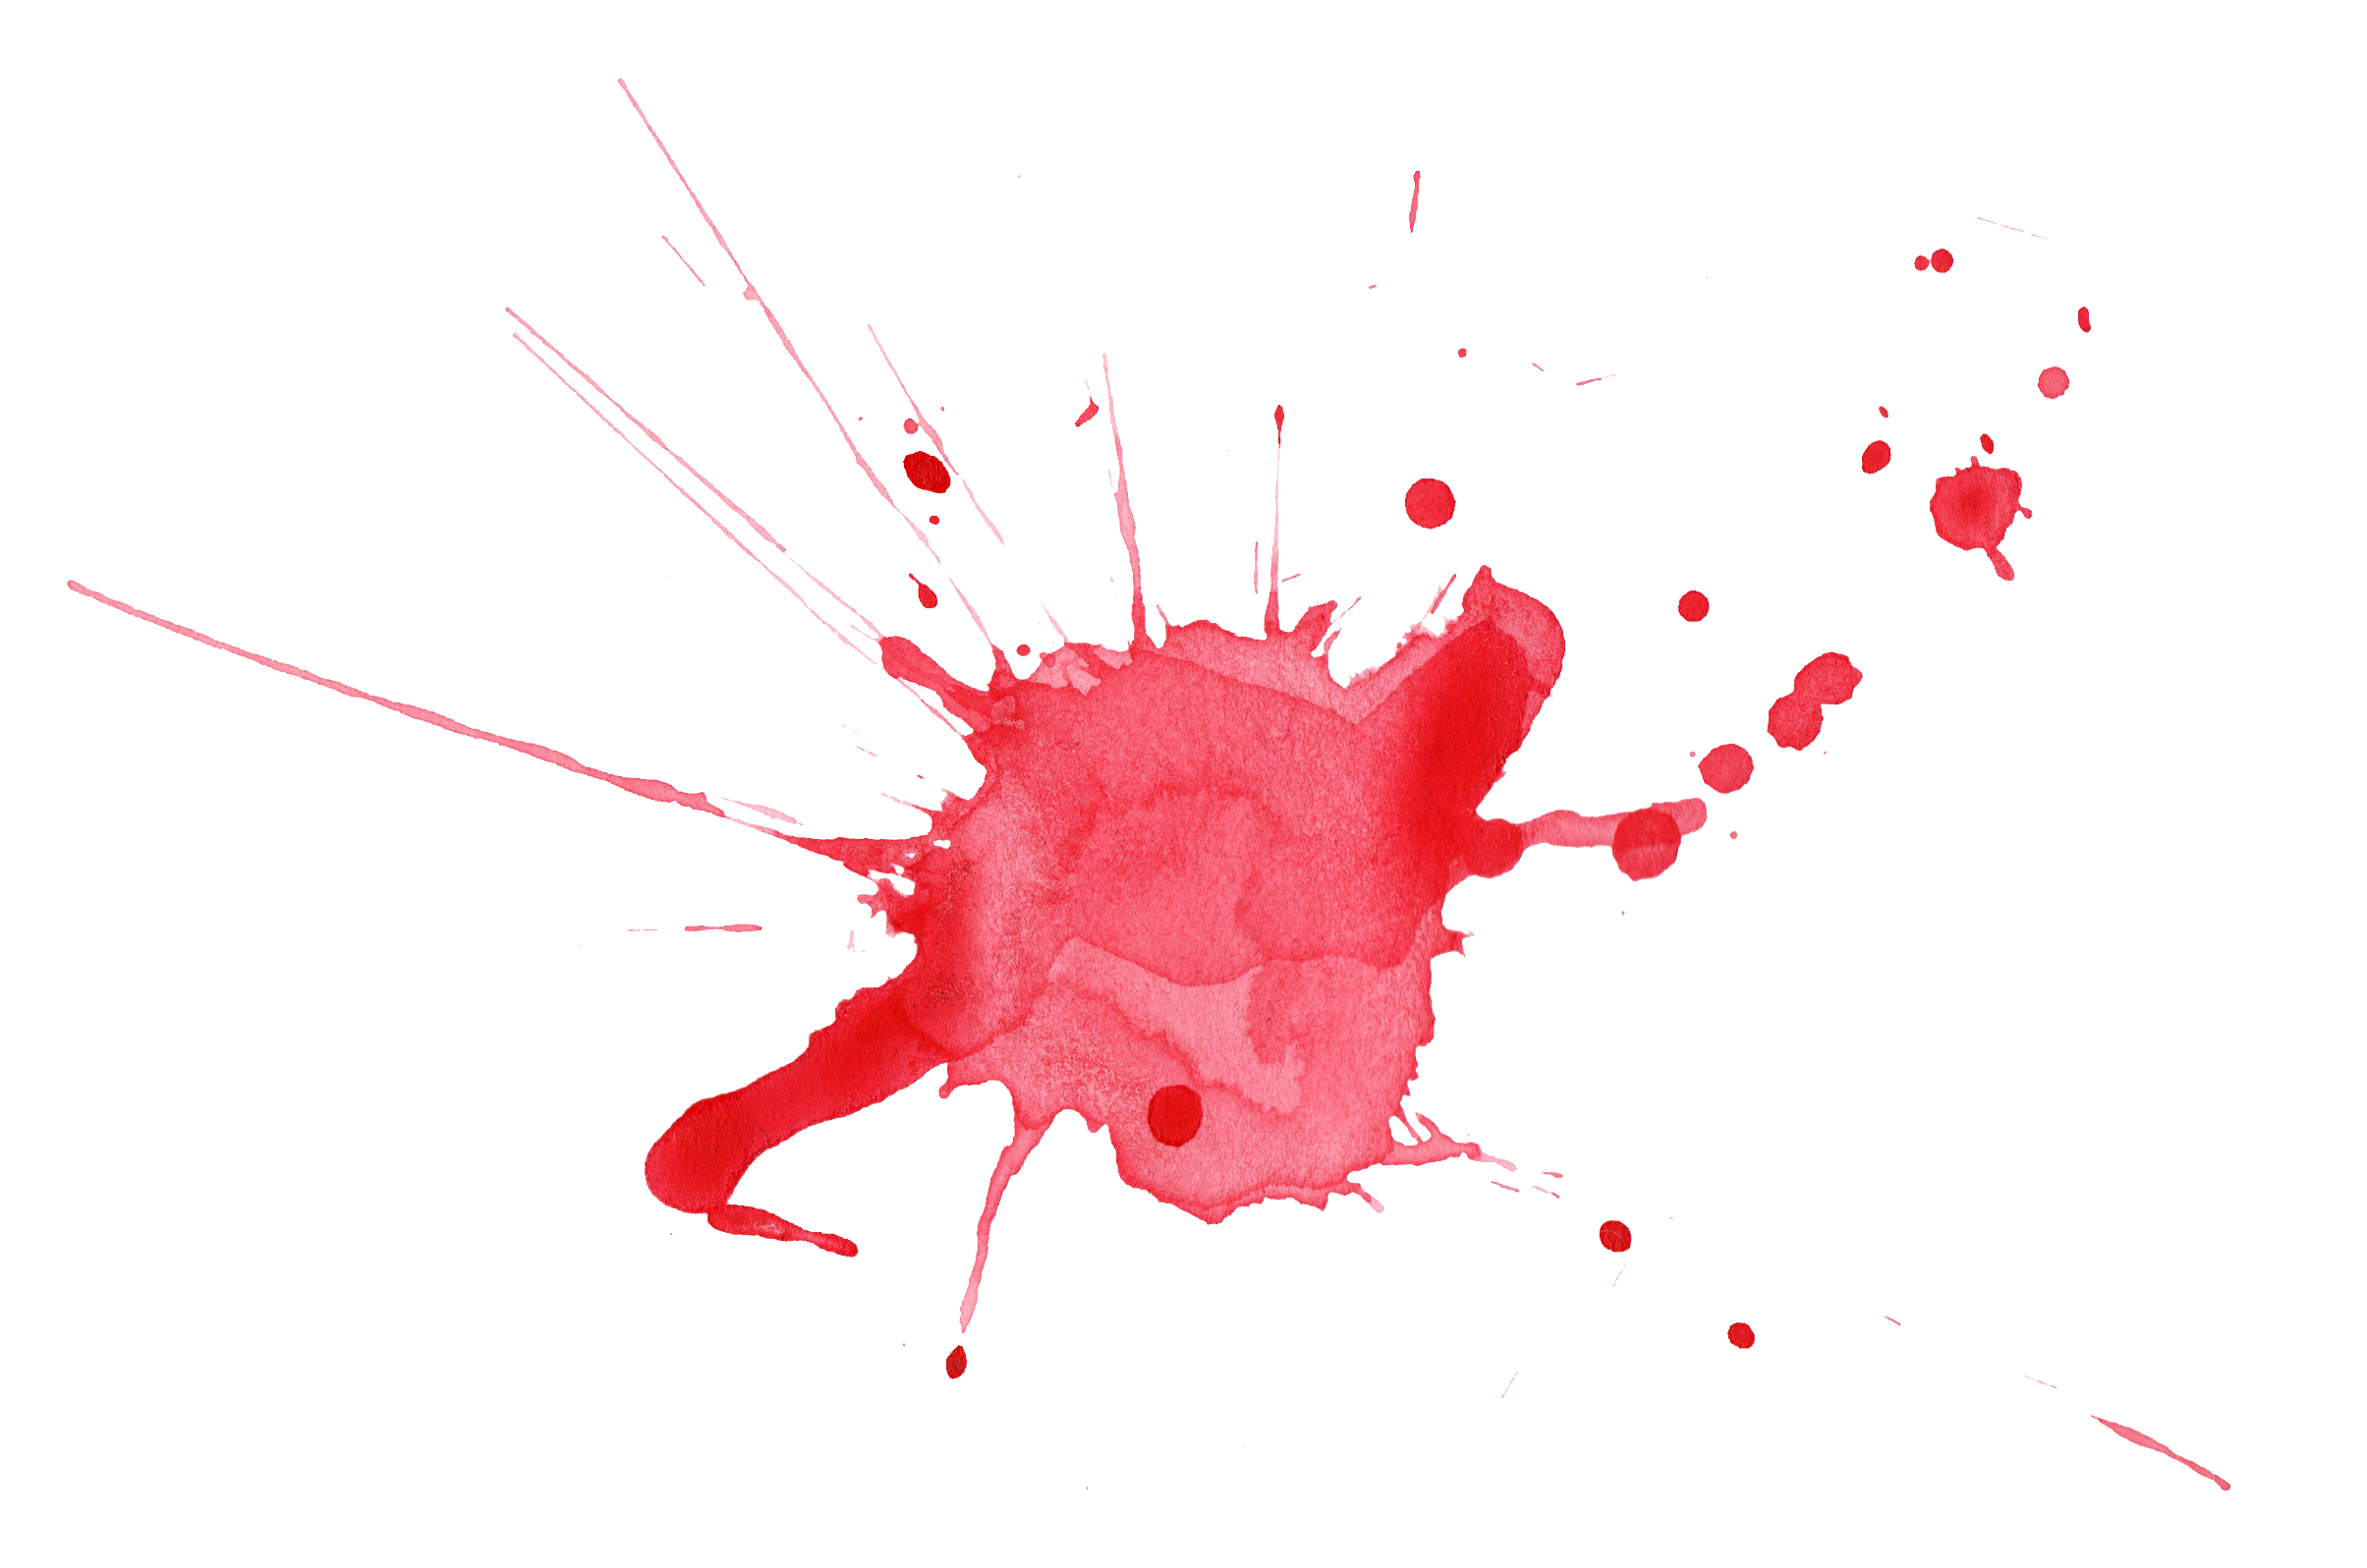 Water color splatter png. Blood red abstract lines